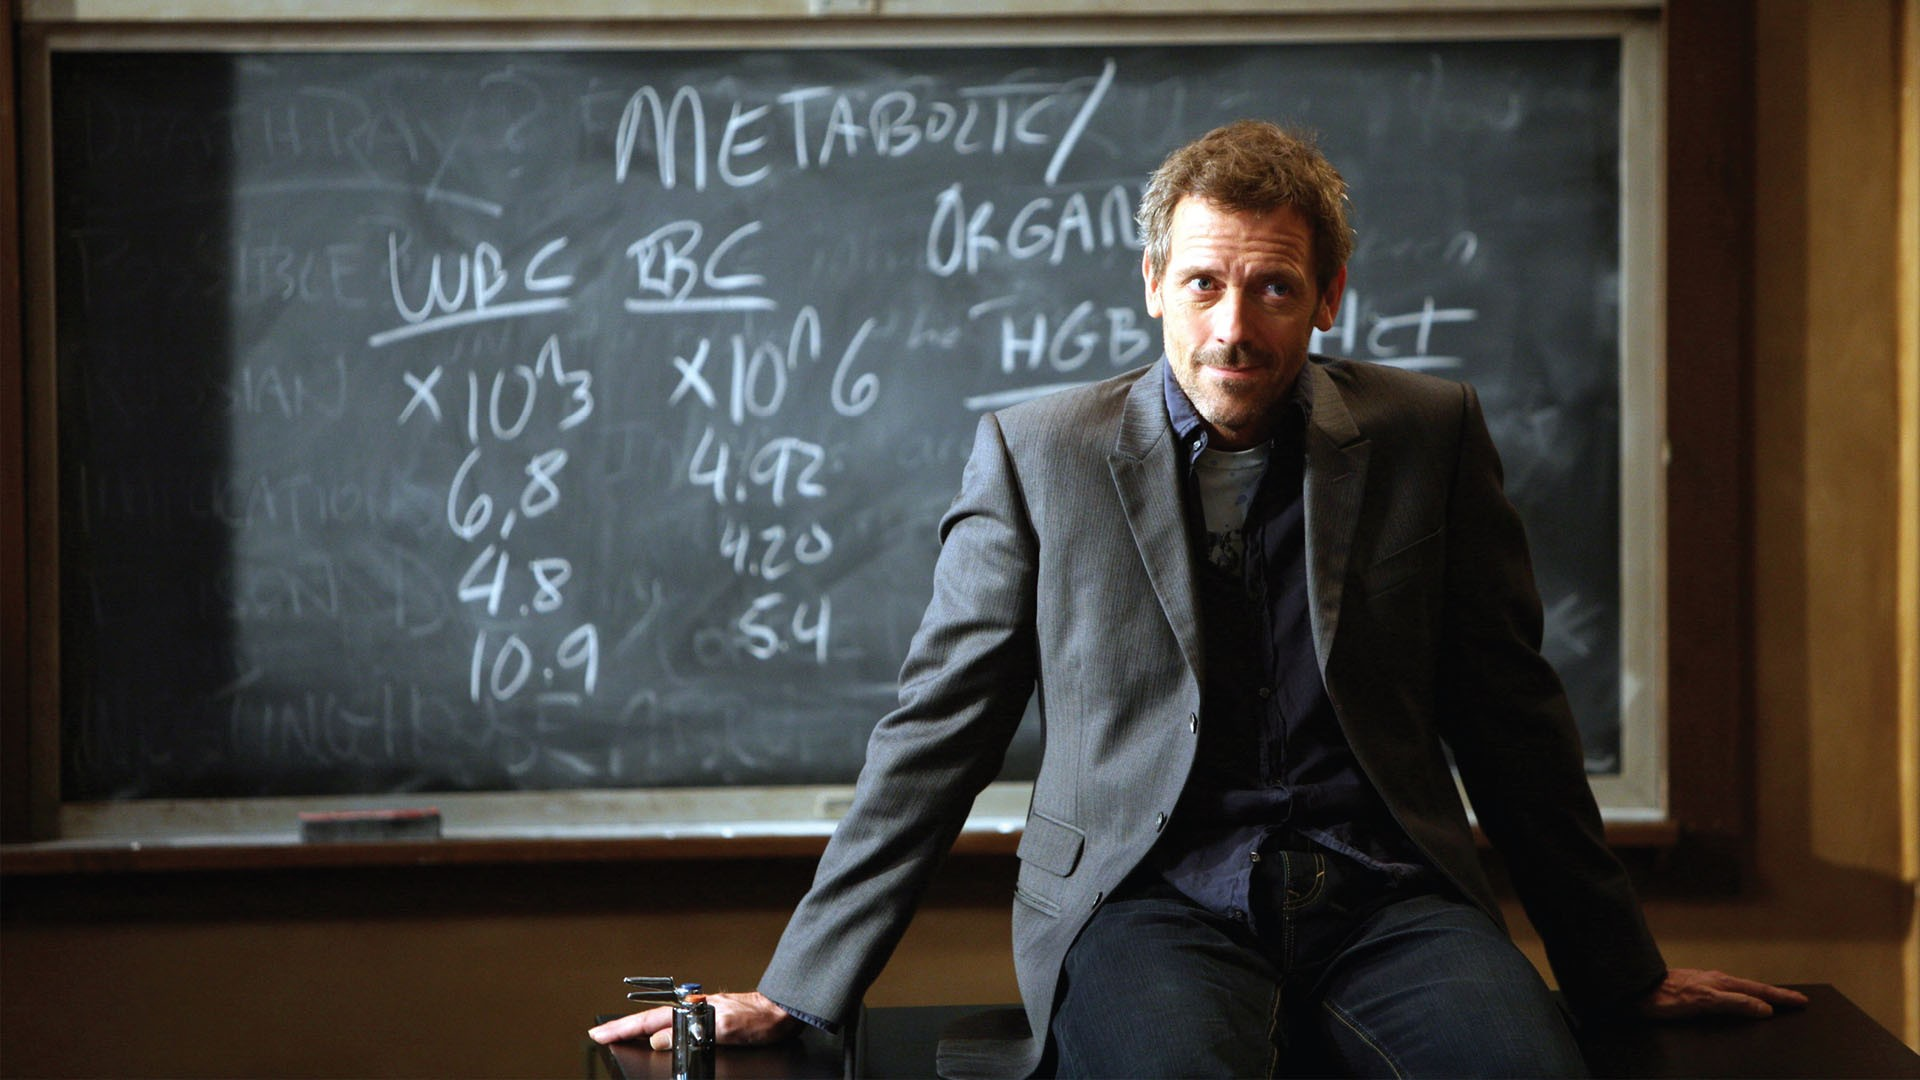 Dr House Wallpaper 1920x1080 Dr House Blackboards Hugh Laurie 1920x1080